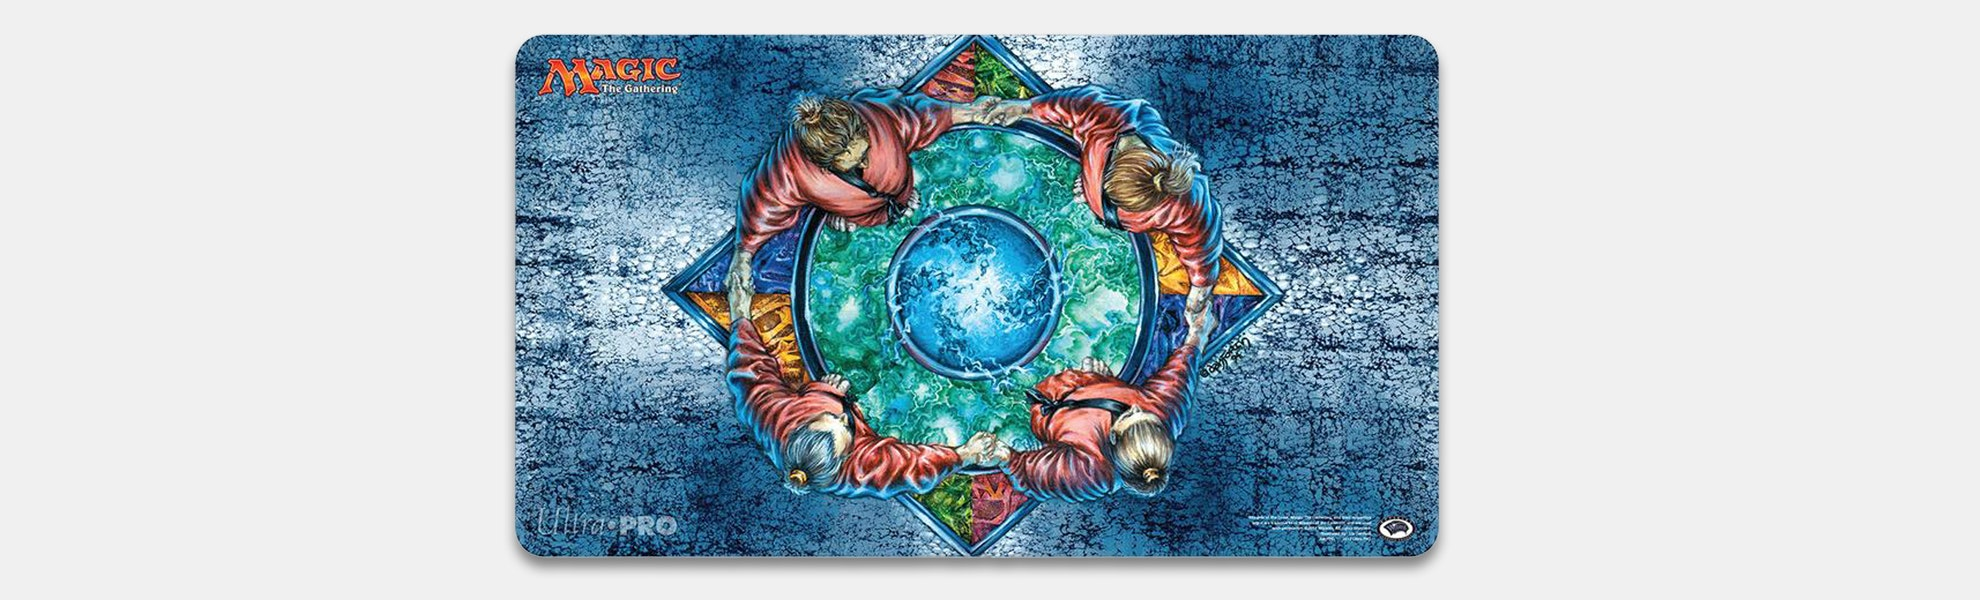 OMA Magic: the Gathering Licensed Playmat